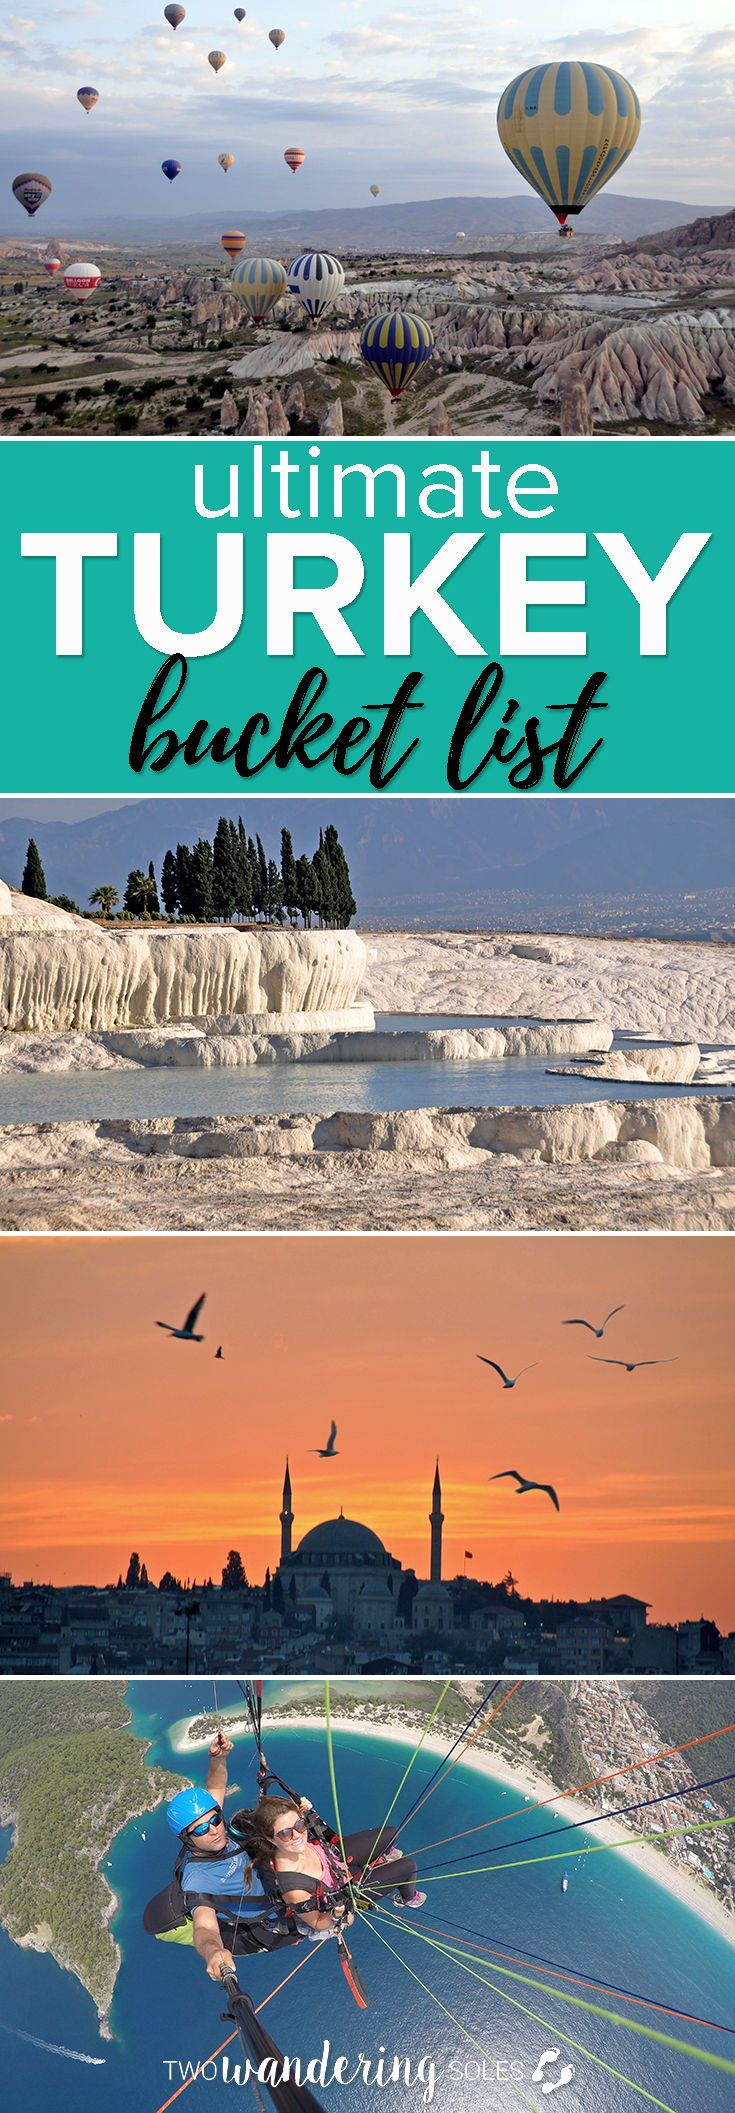 15 Epic Places to Visit In Turkey